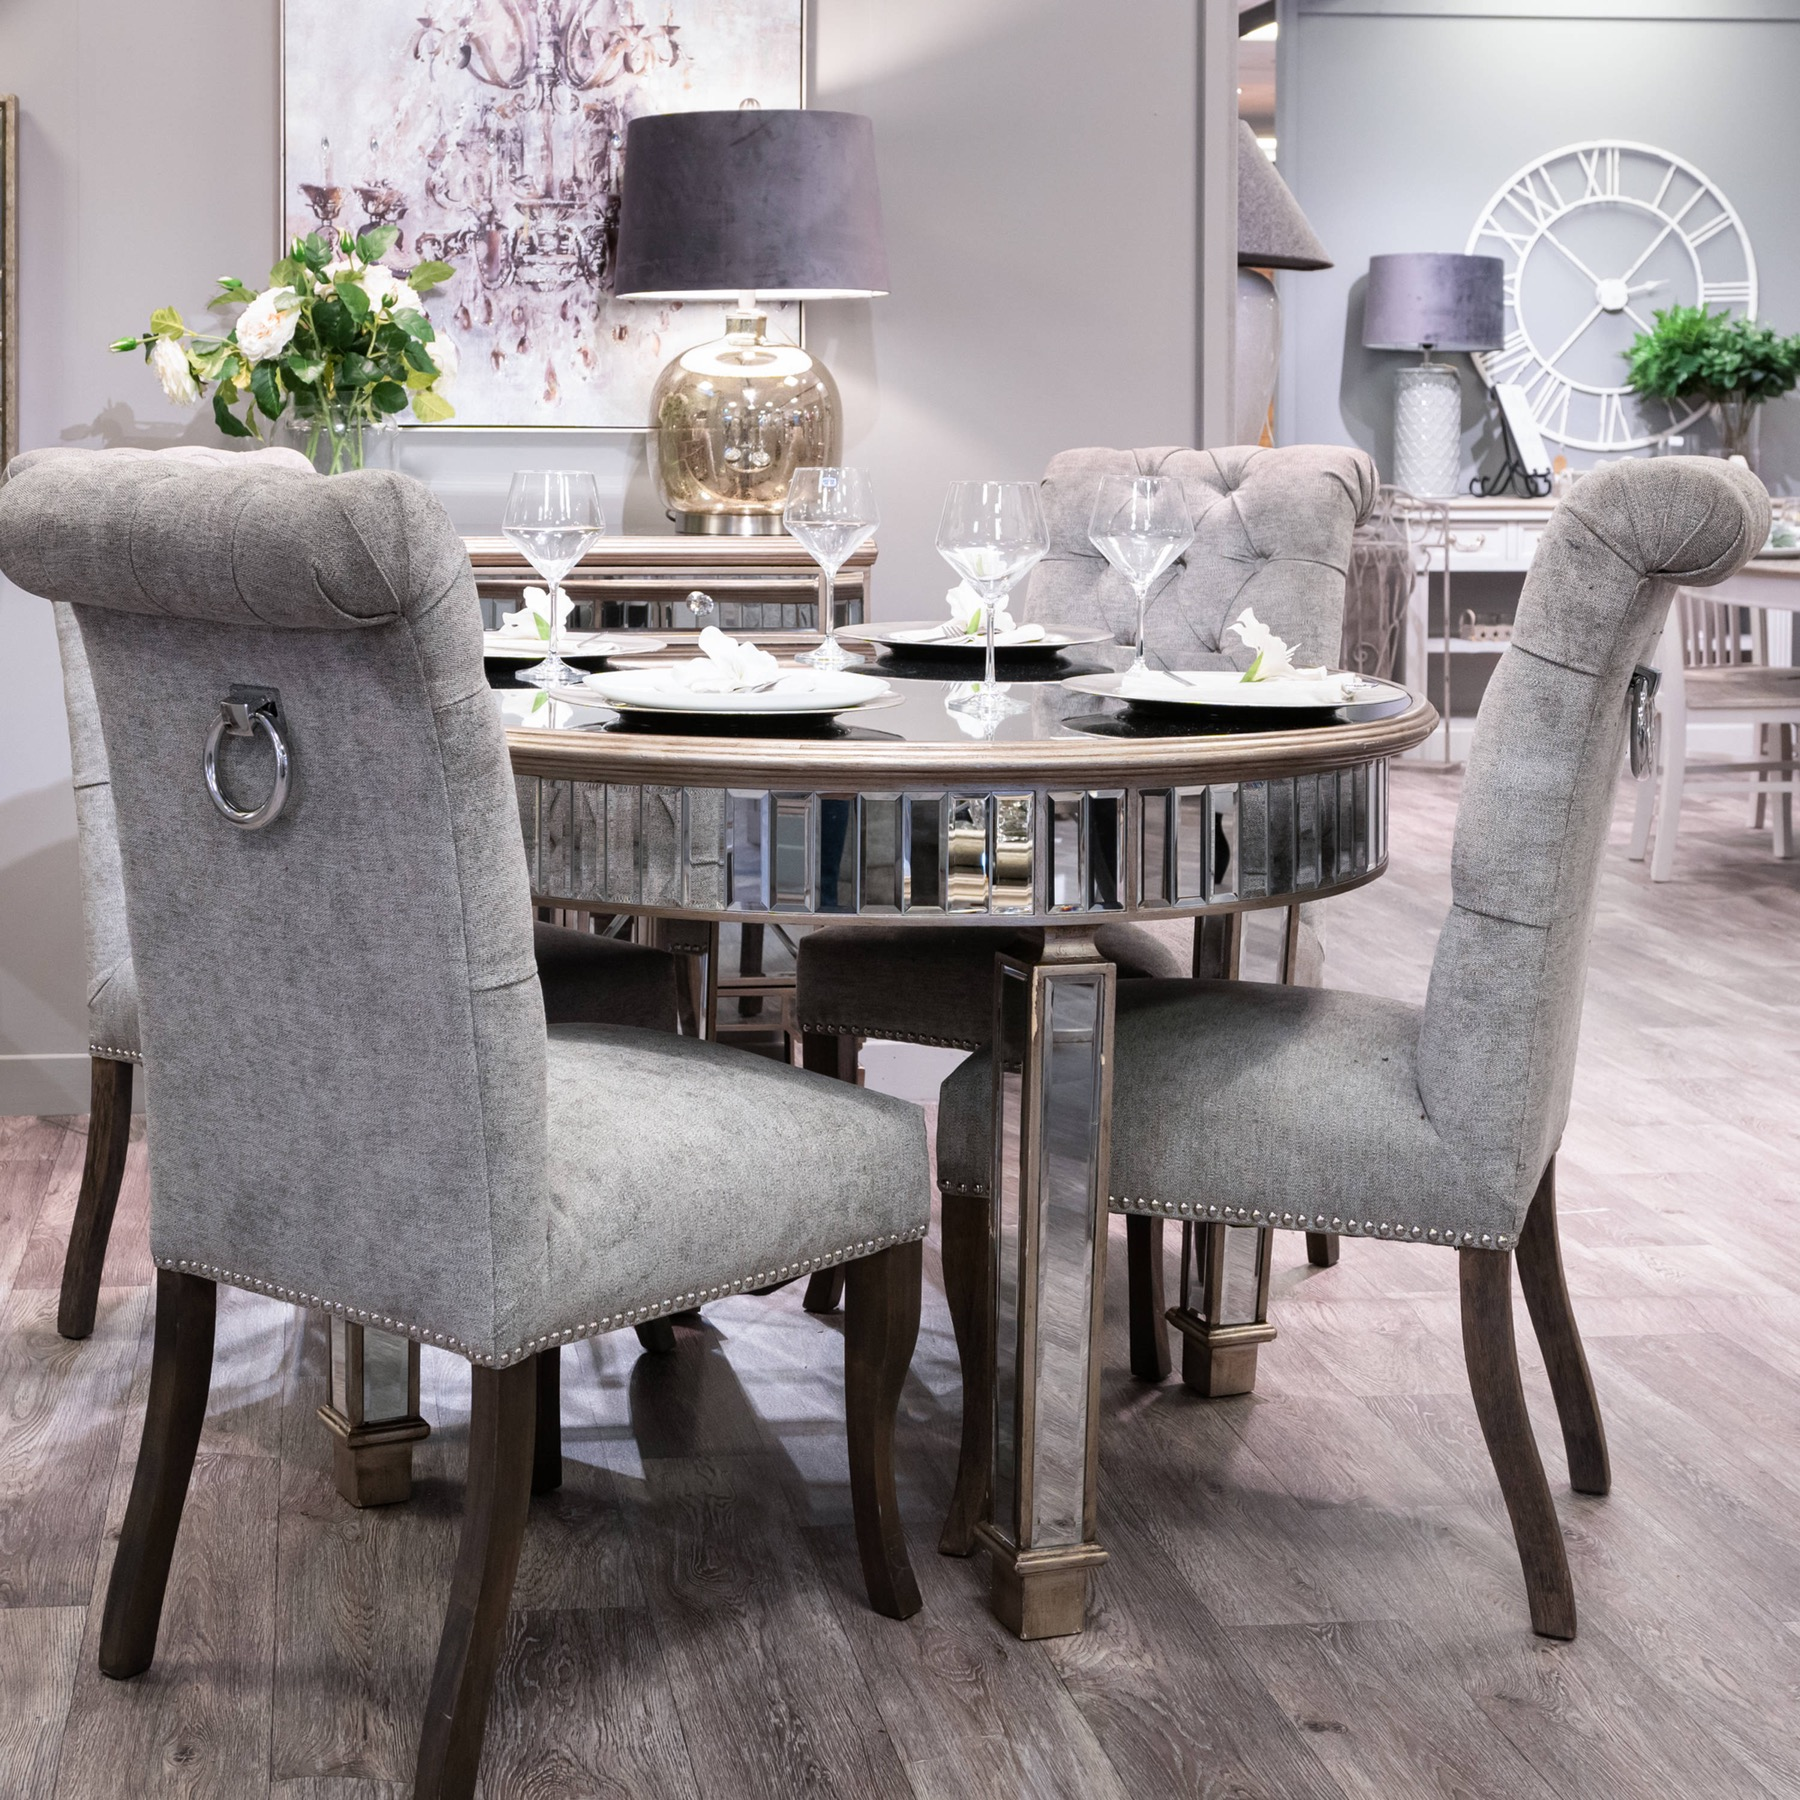 Silver Roll Top Dining Chair With Ring Pull - Image 8